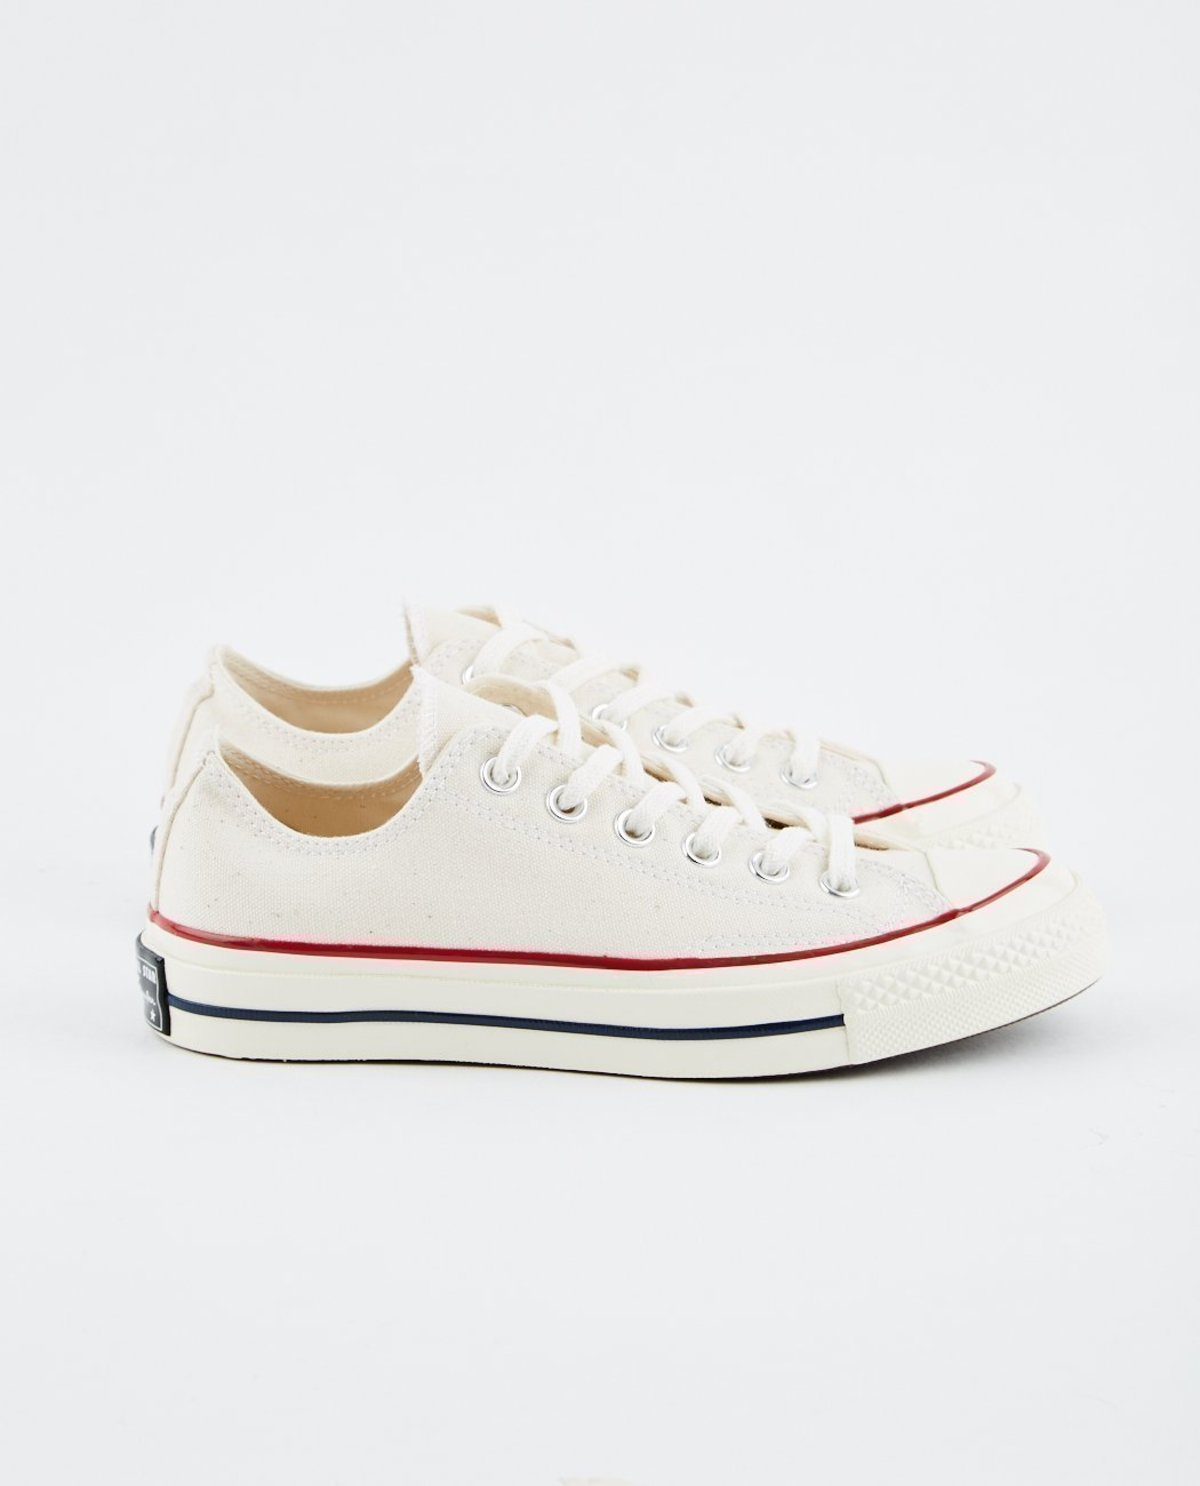 Converse CHUCK TAYLOR ALL STAR '70 LOW TOP - OFF WHITE